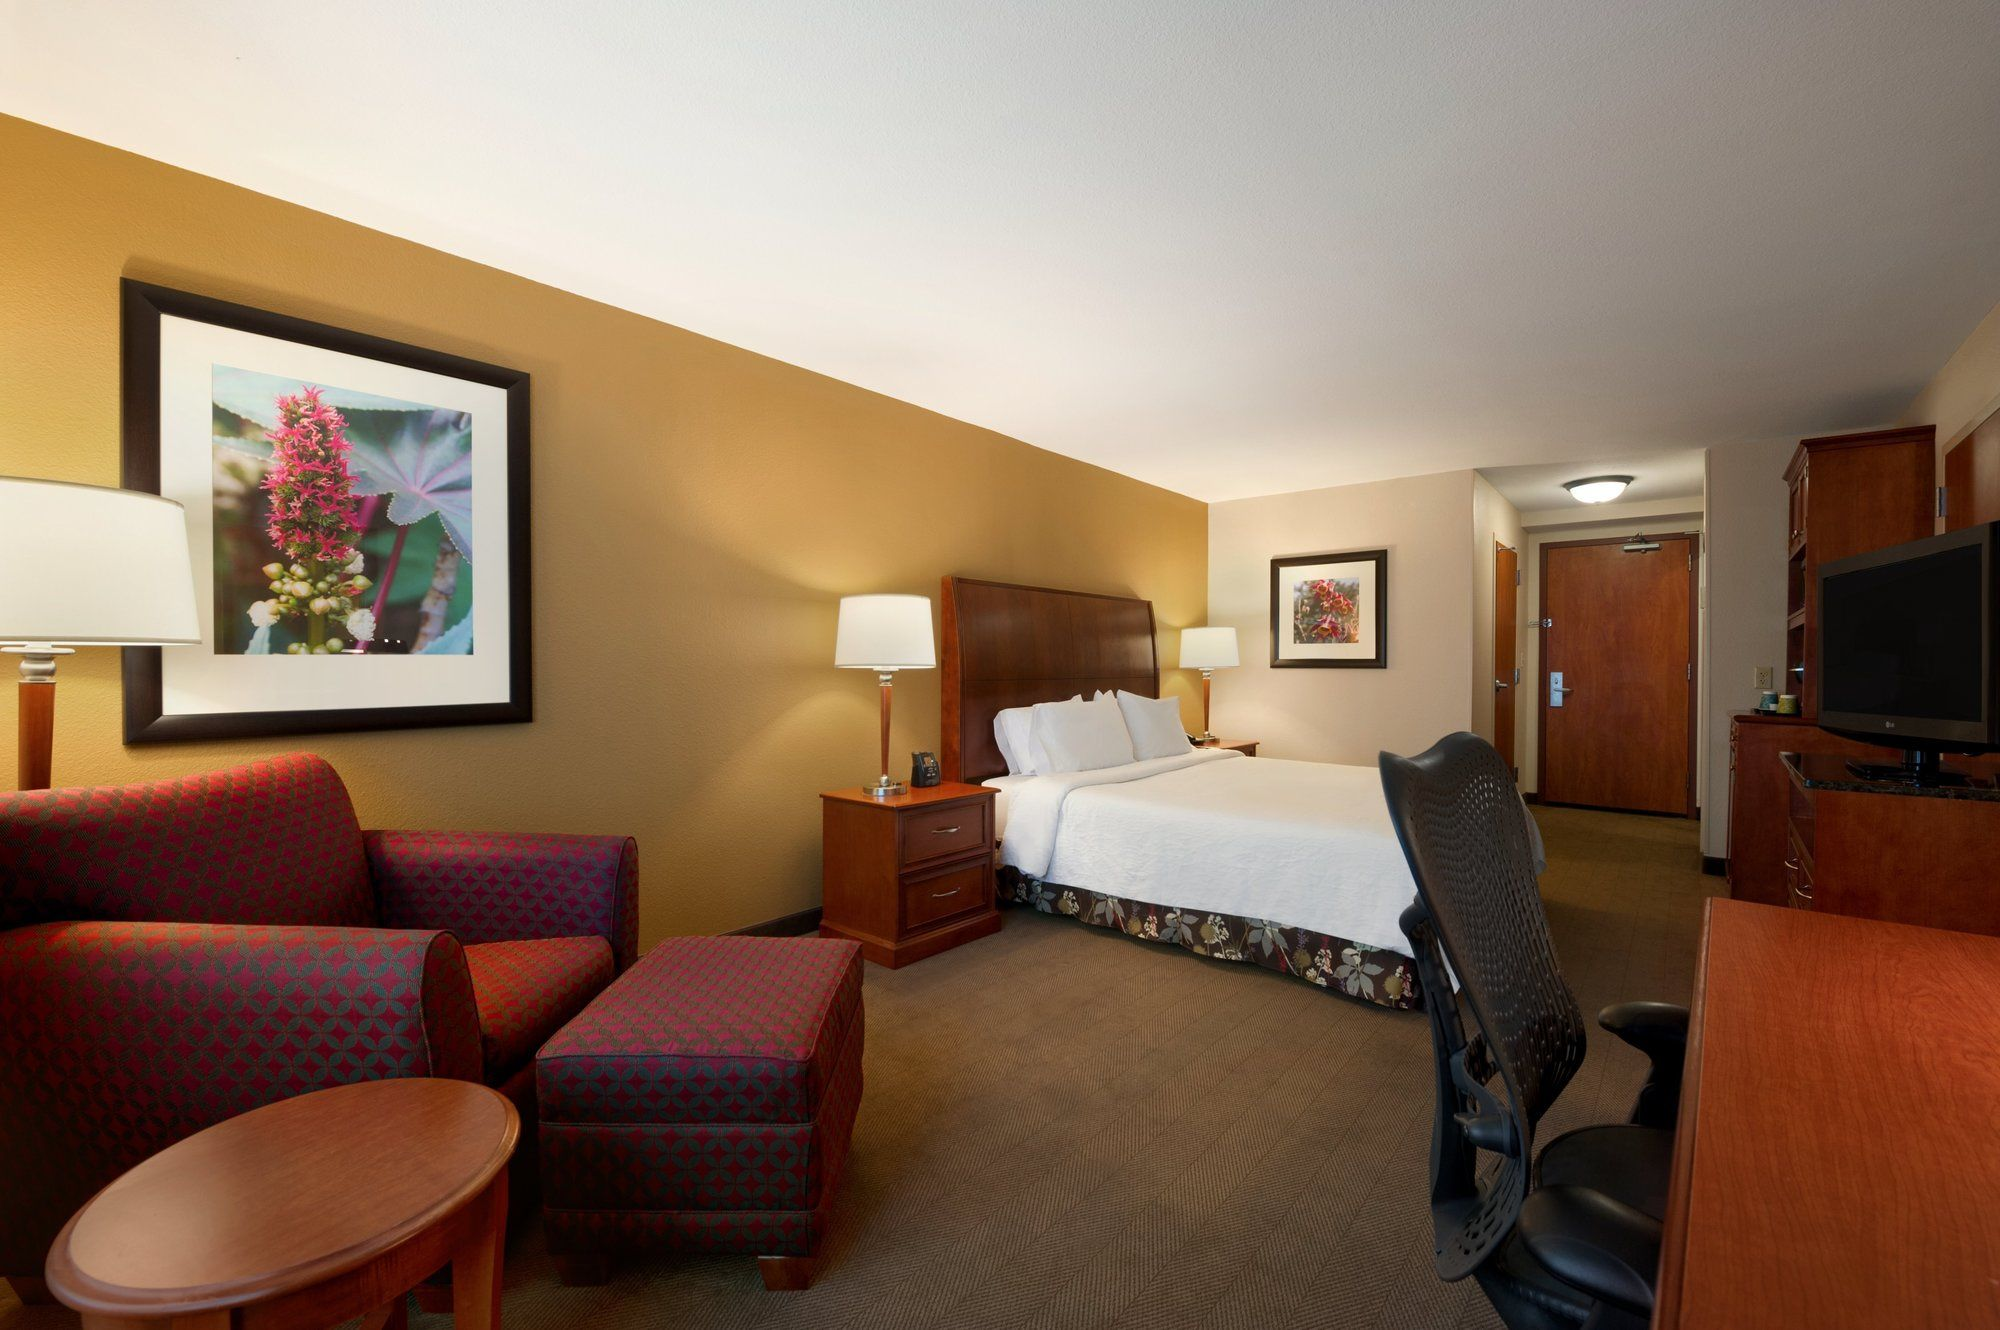 Houston Hotel Coupons for Houston, Texas - FreeHotelCoupons.com